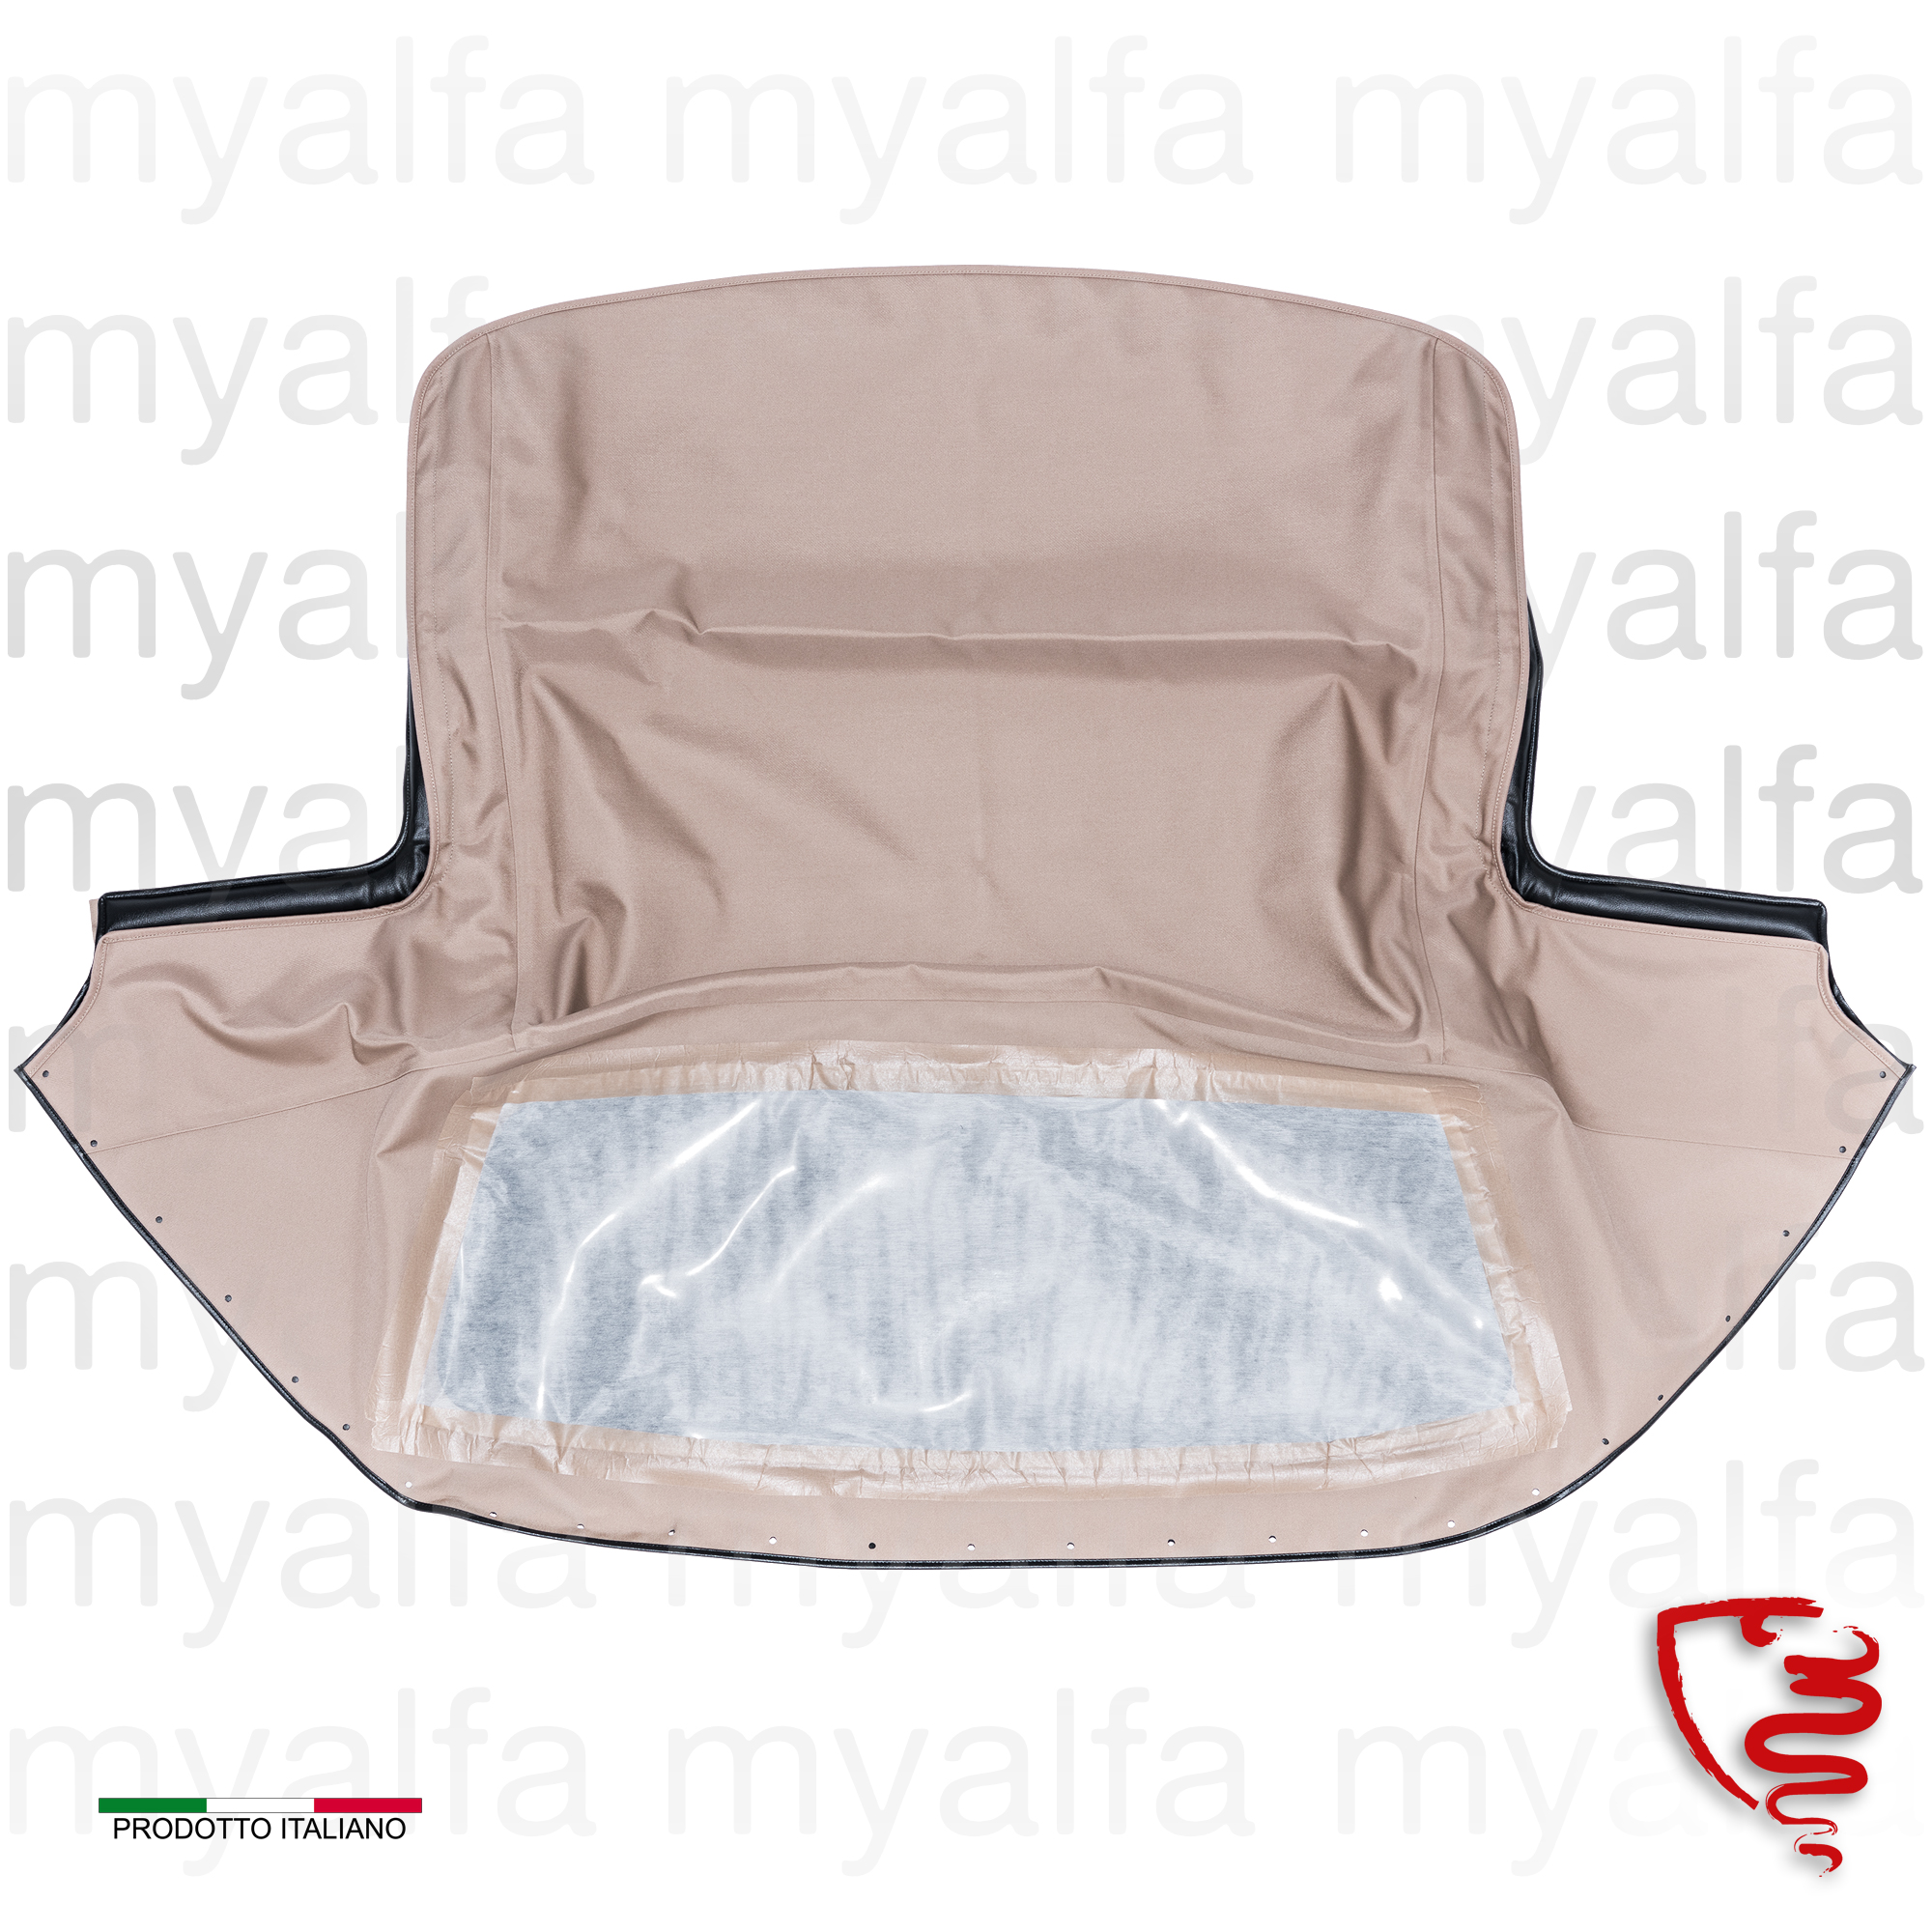 Roof canvas beige clear Sonneland Spider 1970-93 for 105/115, Spider, Body parts, Top Covers, Convertible top